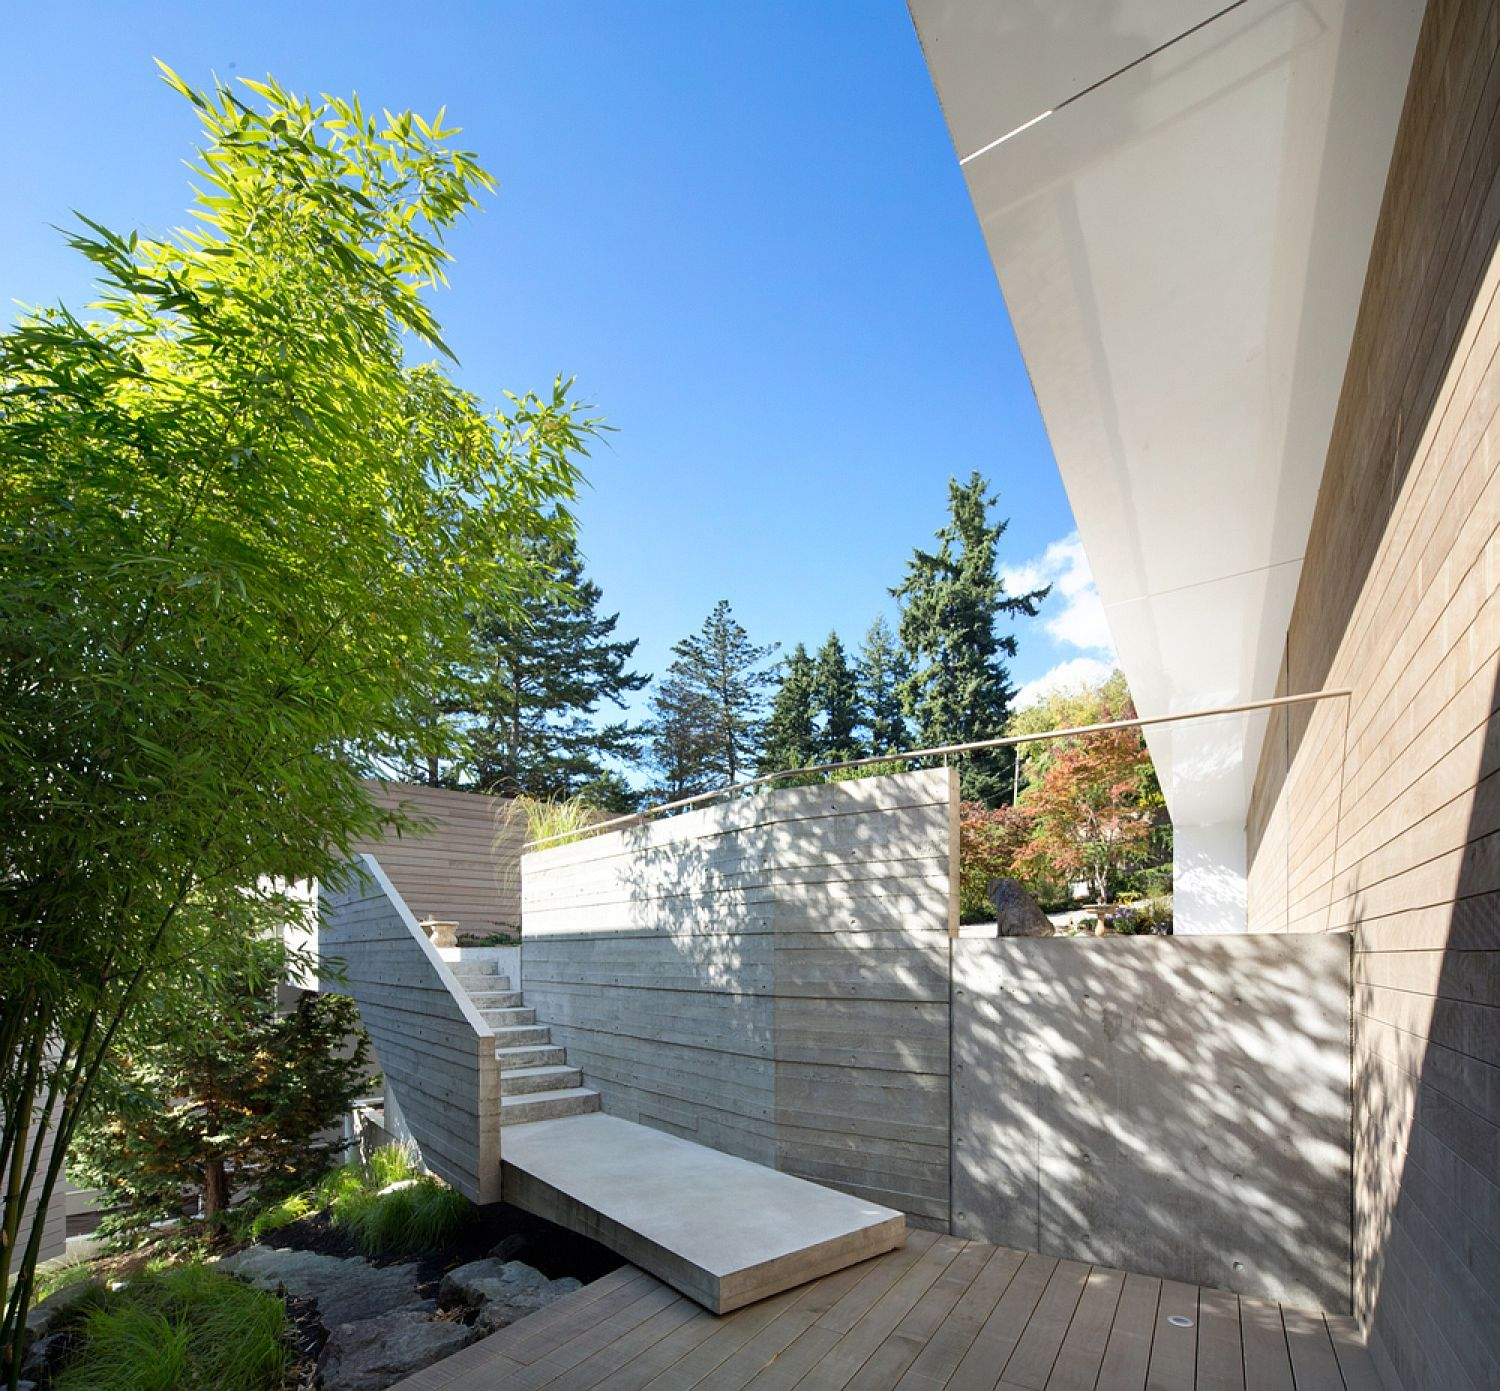 Split level arrangement and half-story stairways create a smart entry at the Vancouver home